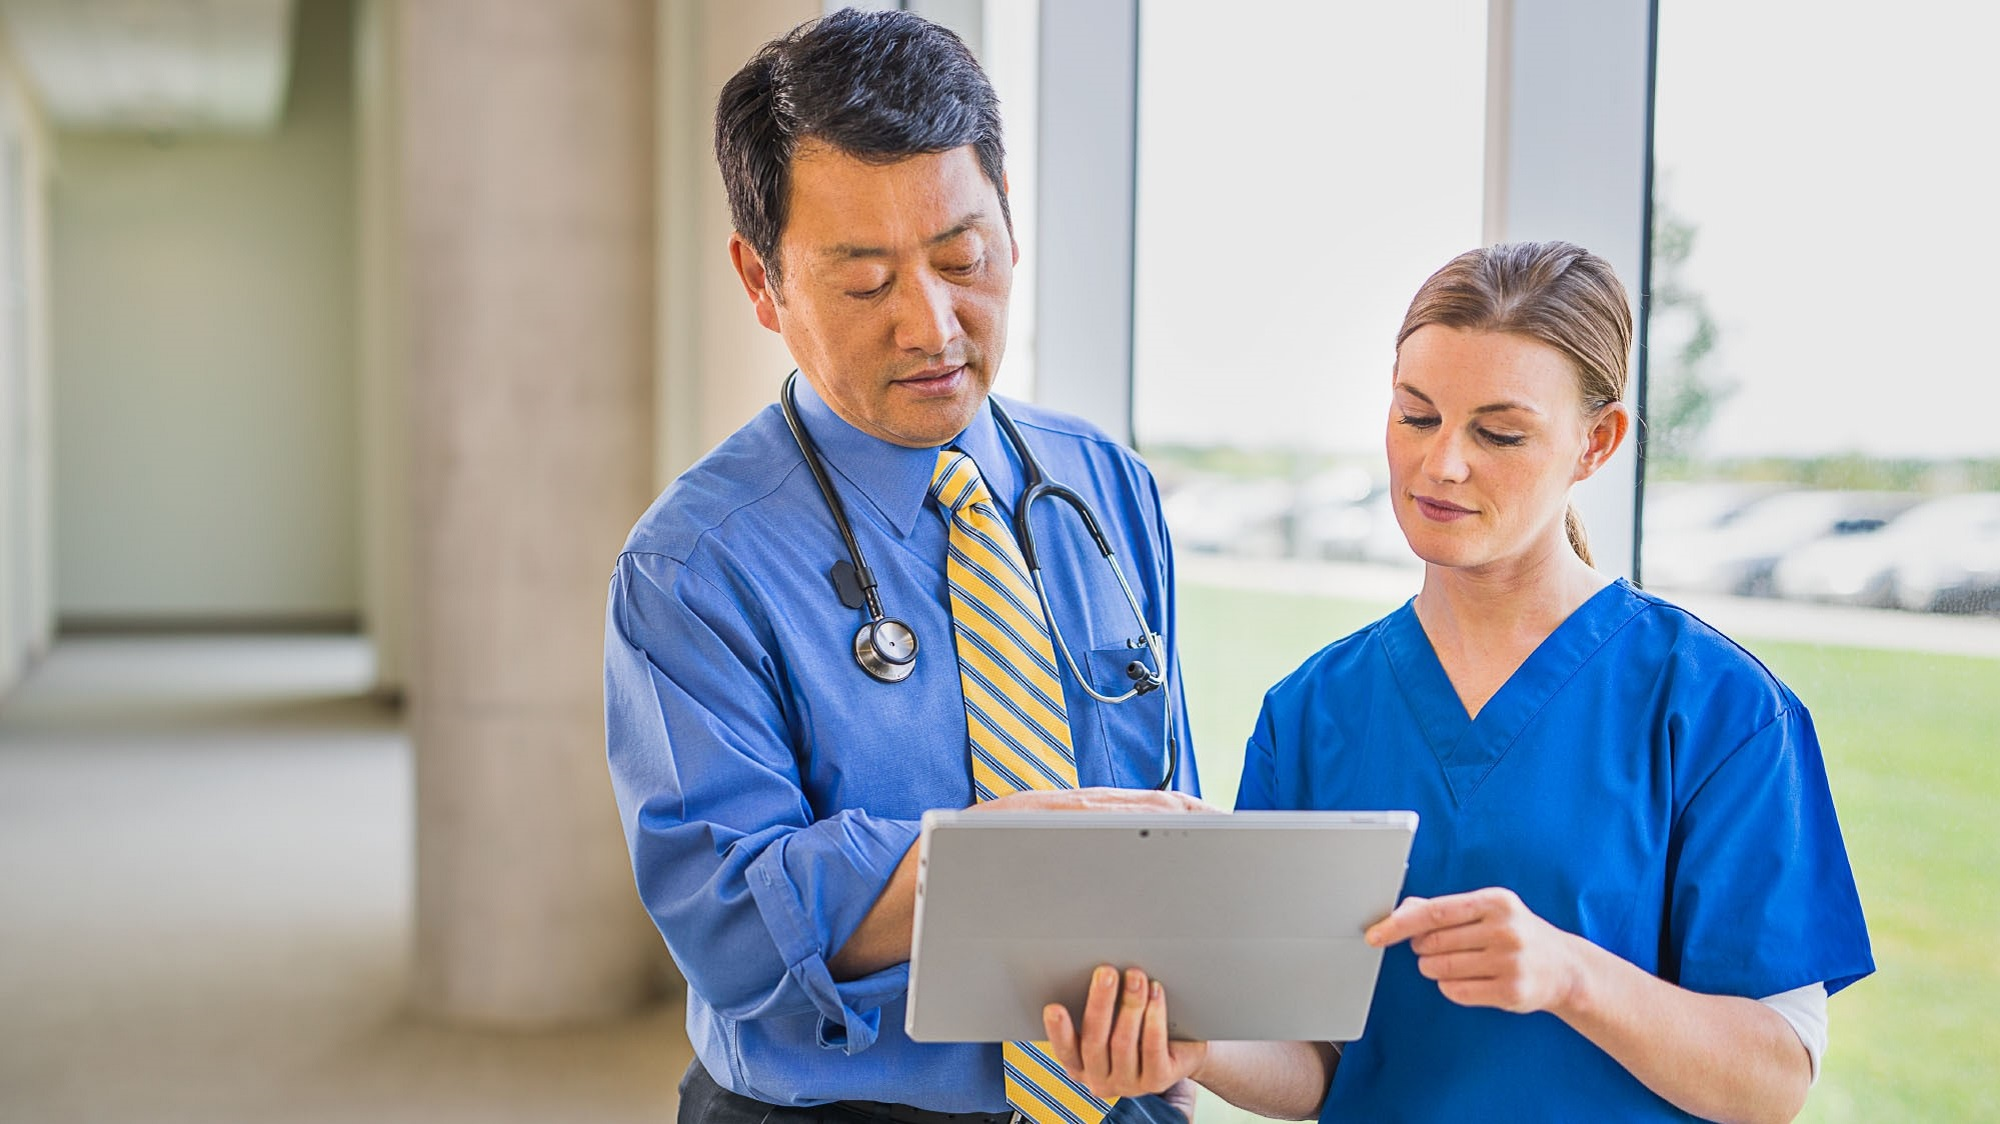 Doctor and nurse reviewing patient data